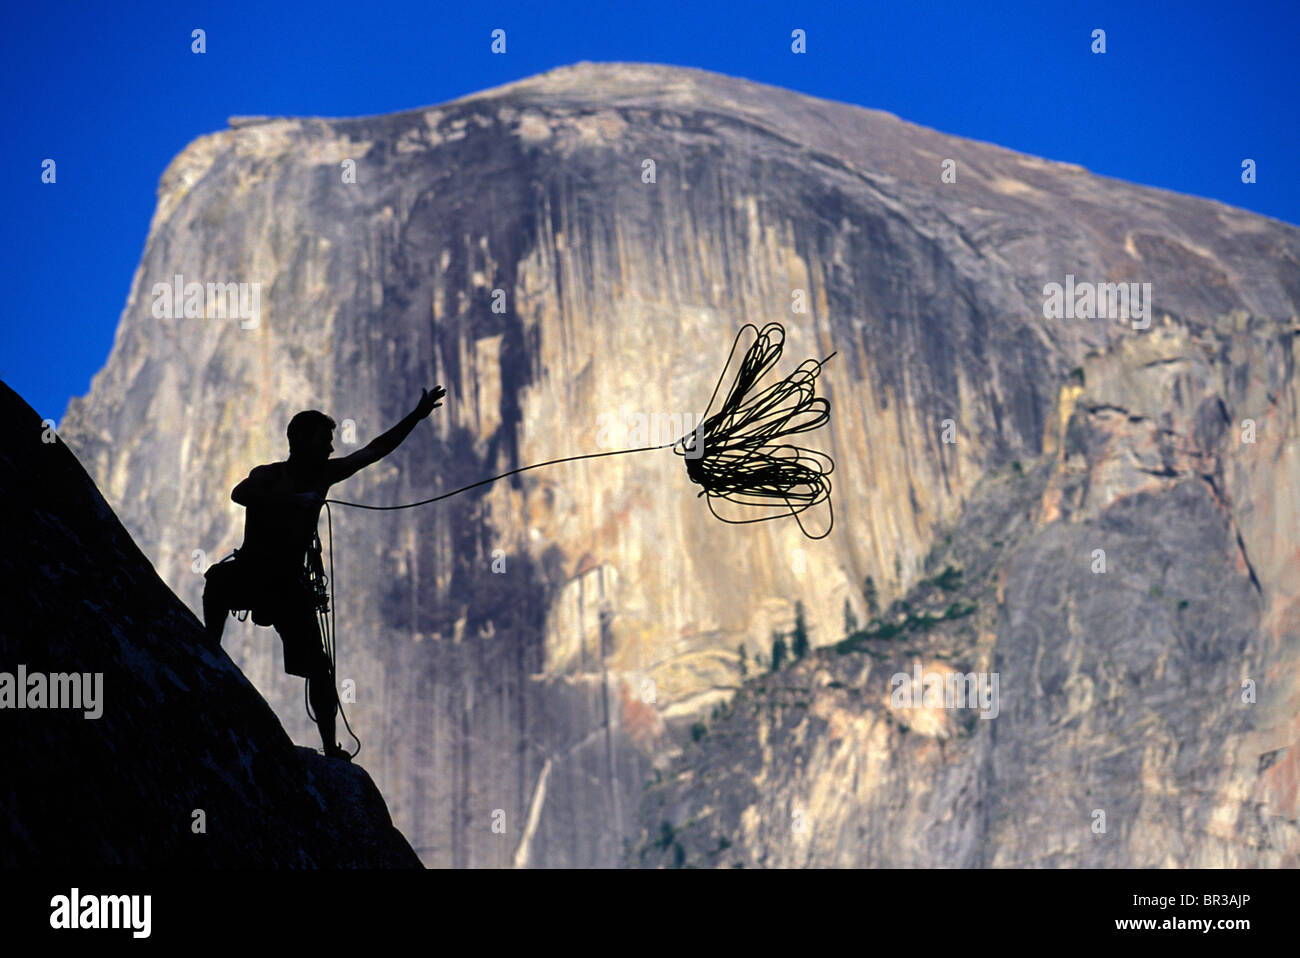 Silhouette against a granite dome of a climber throwing a rope off a cliff. - Stock Image